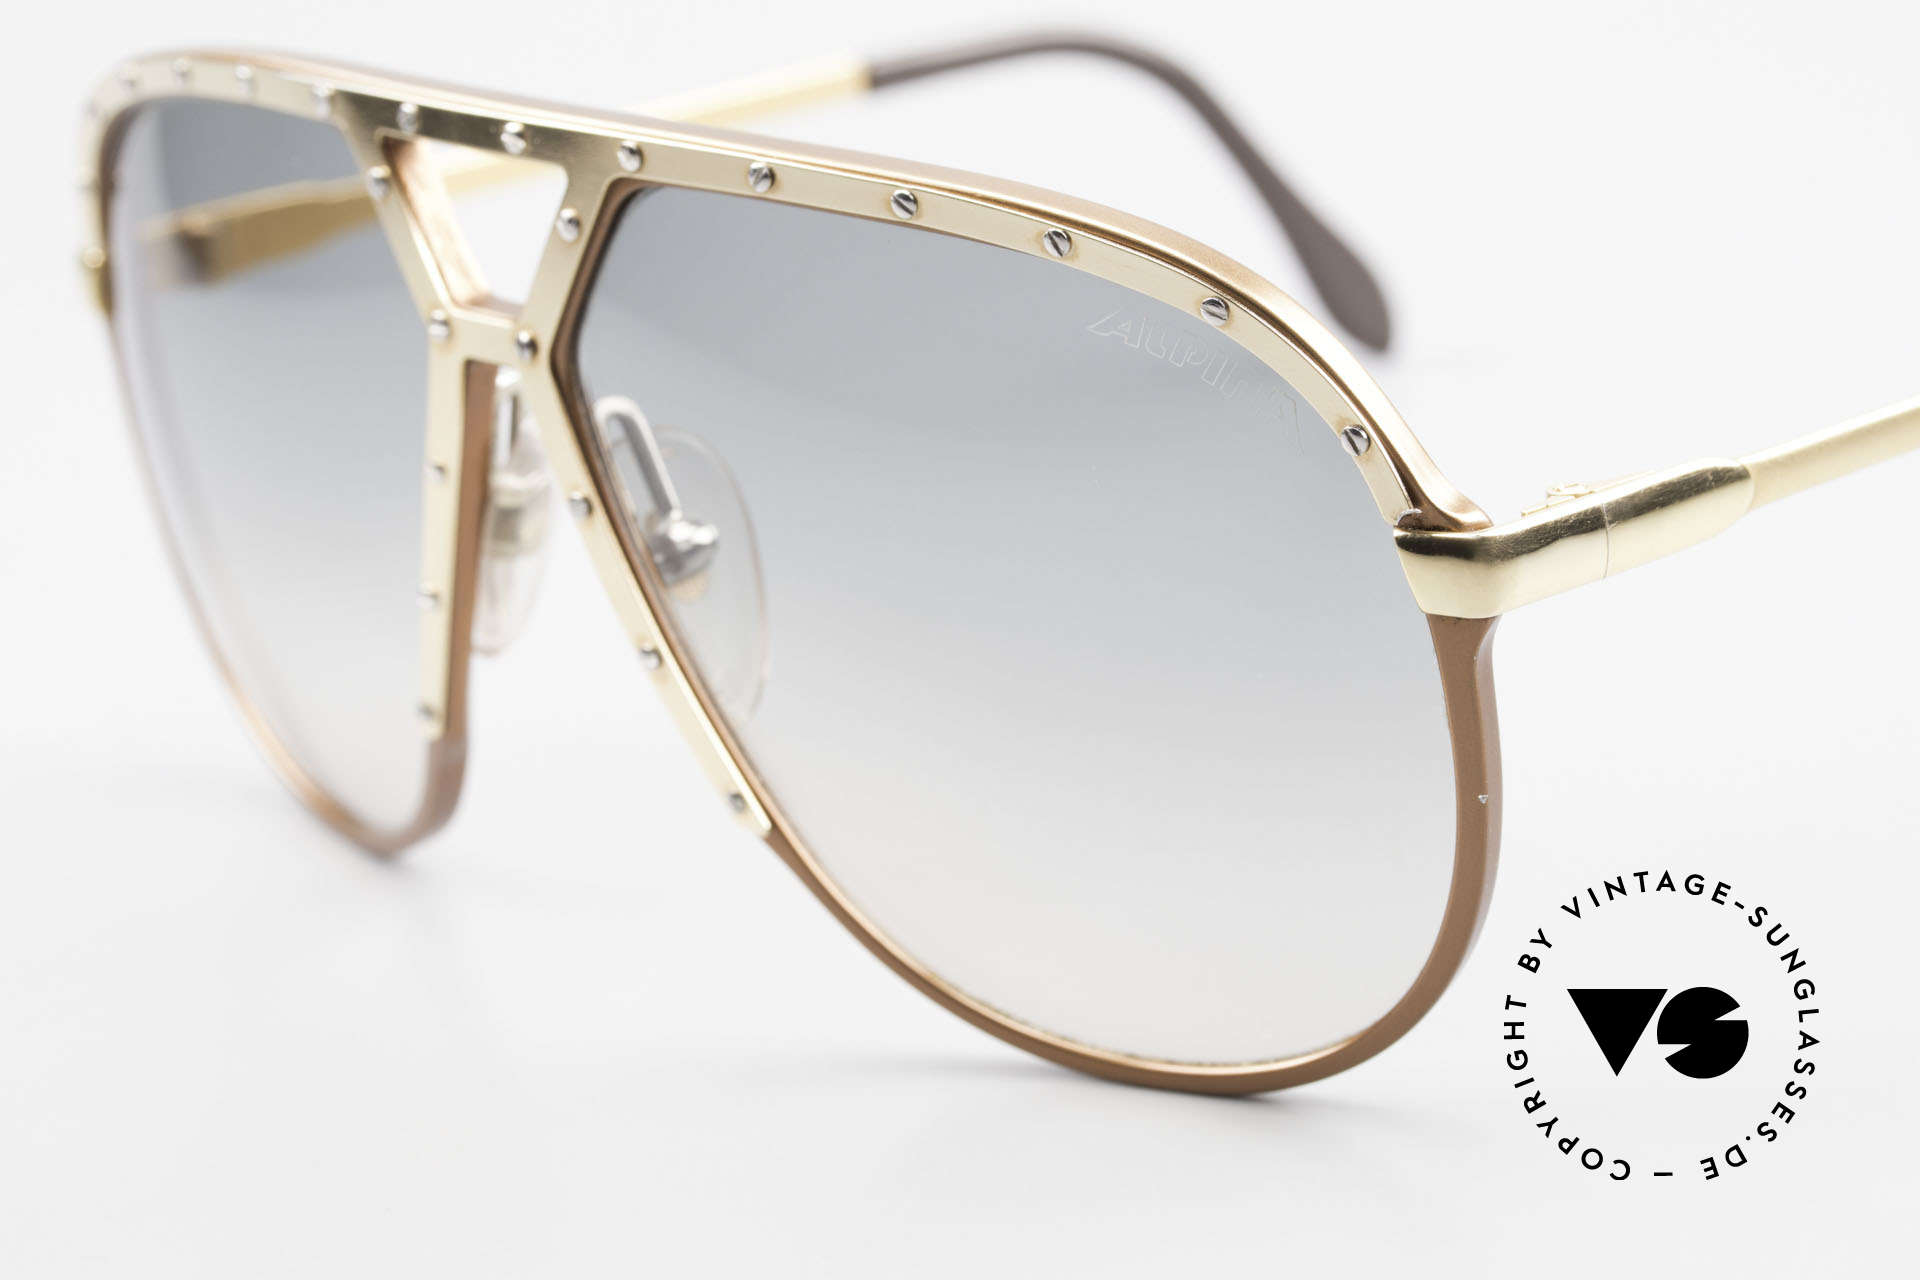 Alpina M1 Iconic 80's Shades XL Hip Hop, handmade (West Germany) in LARGE size 64-14, Made for Men